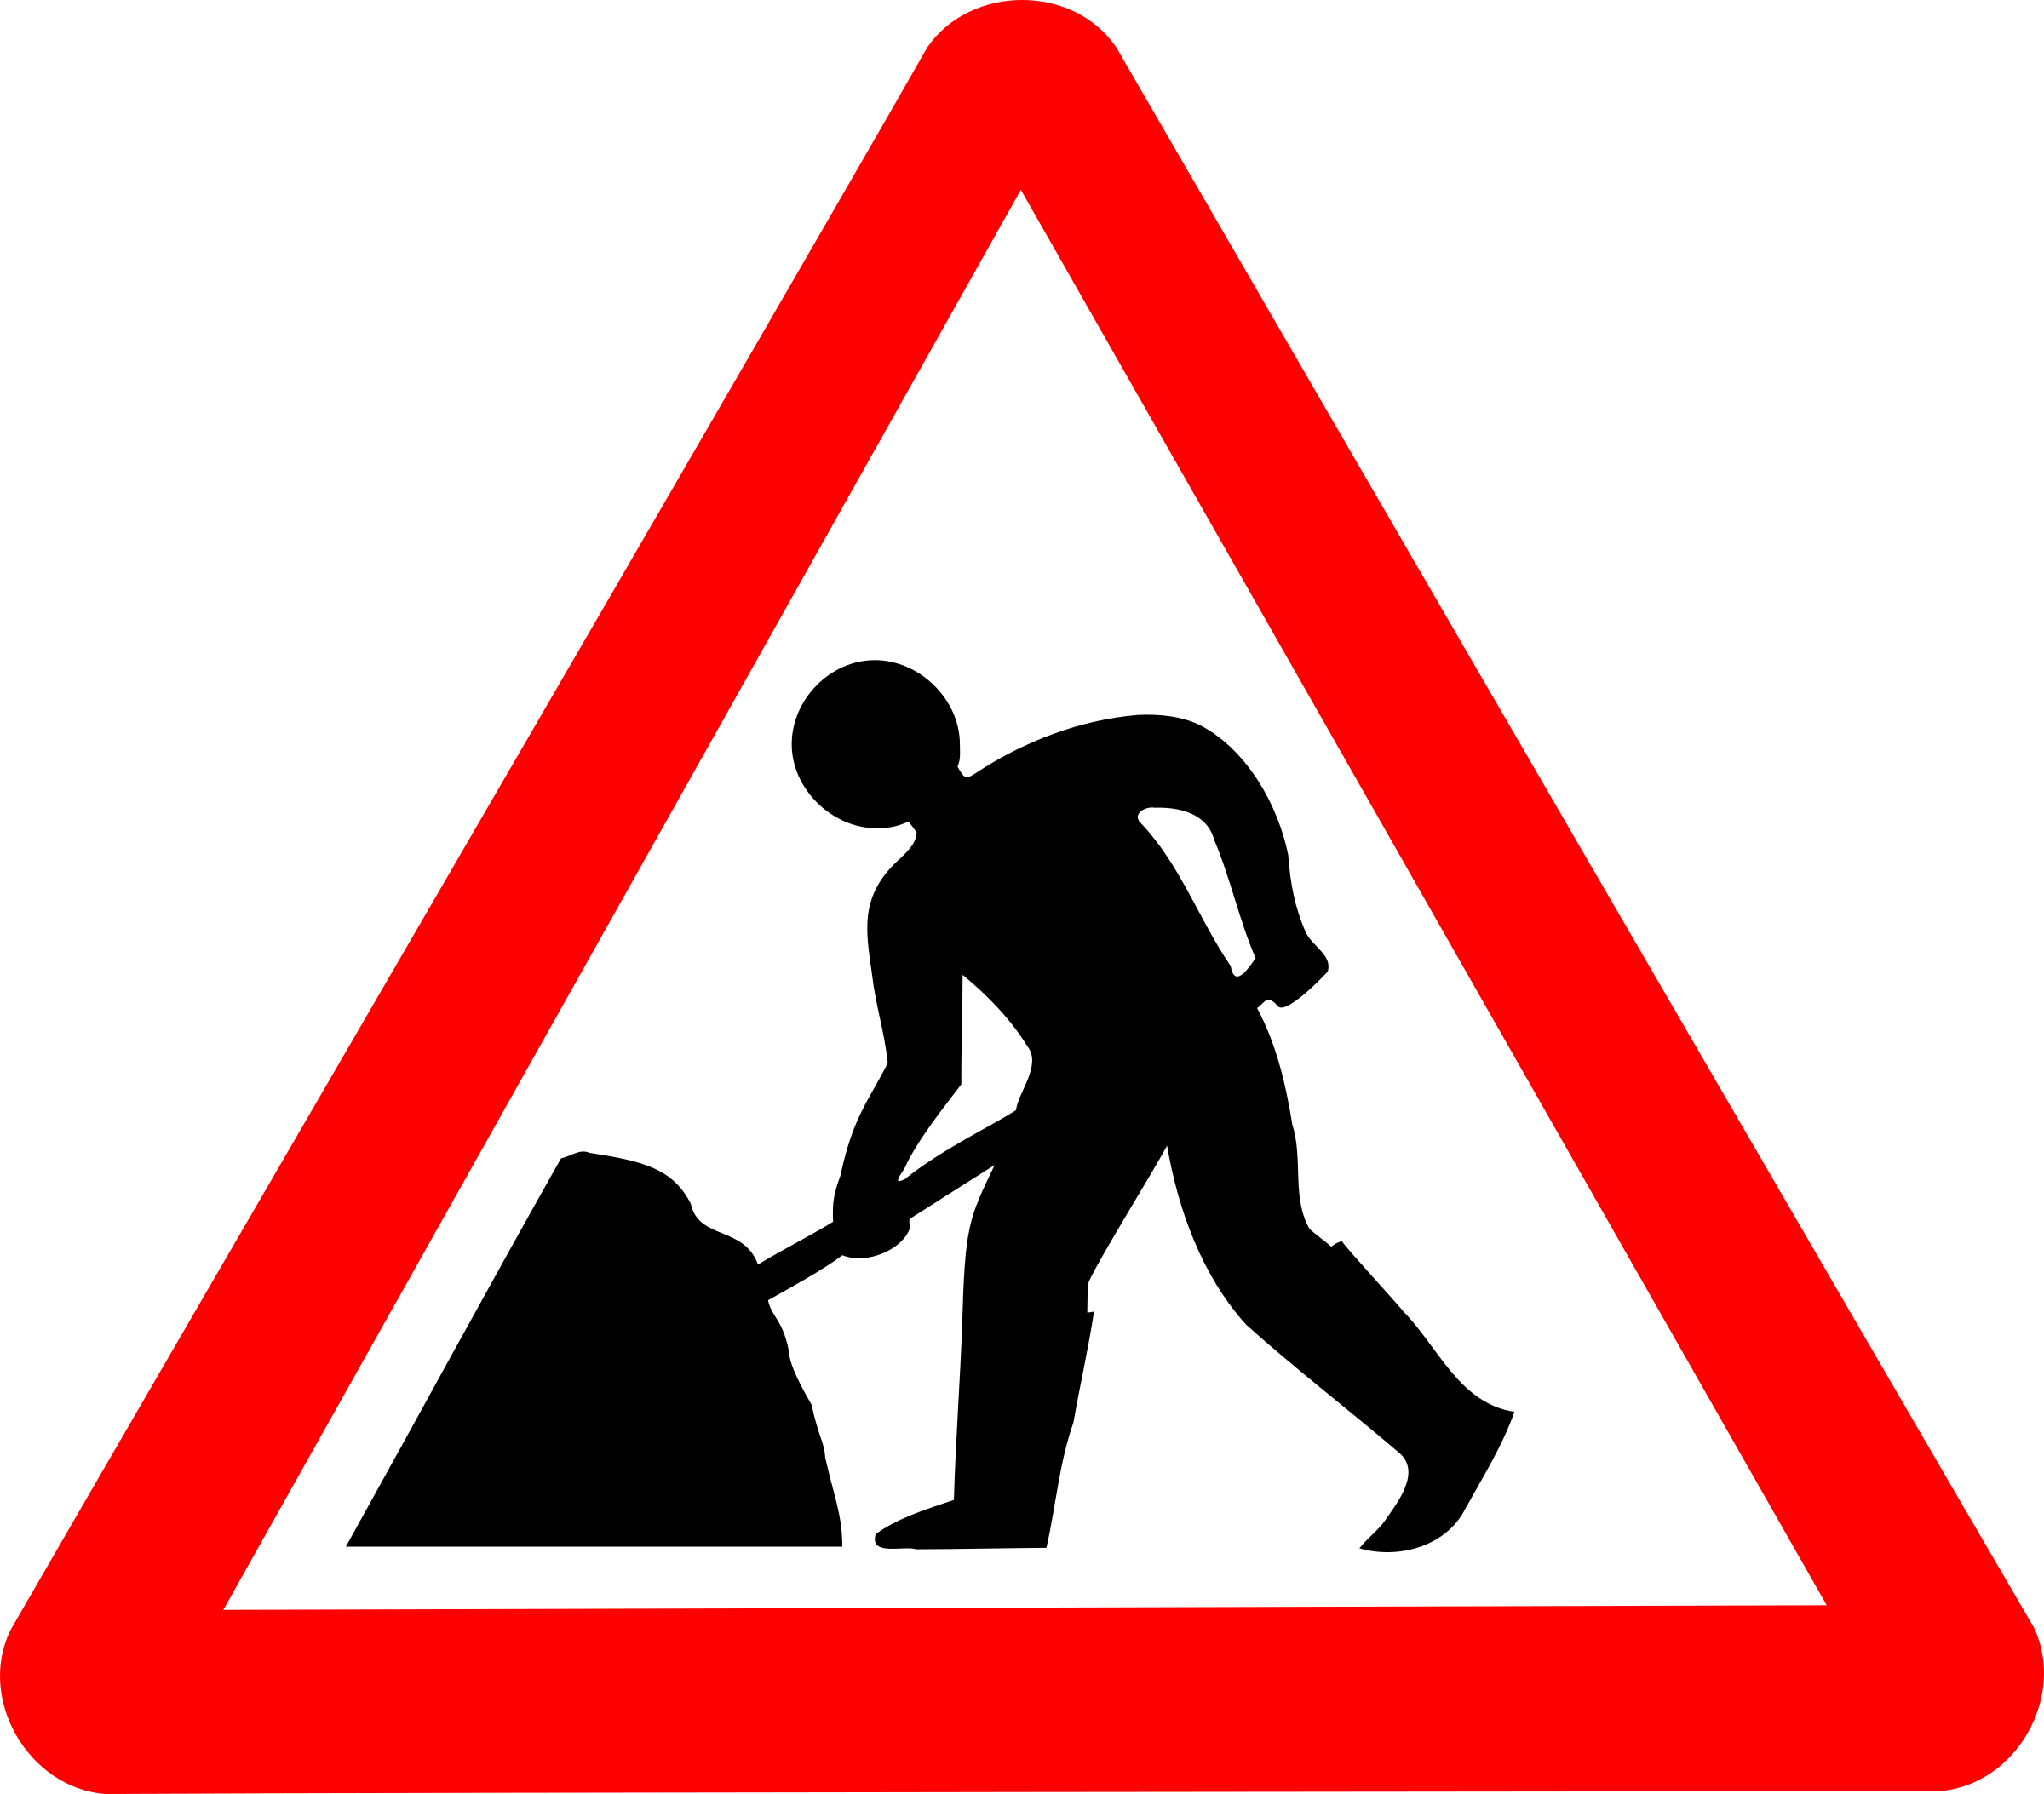 Roadsign man w big. Clipart umbrella triangular